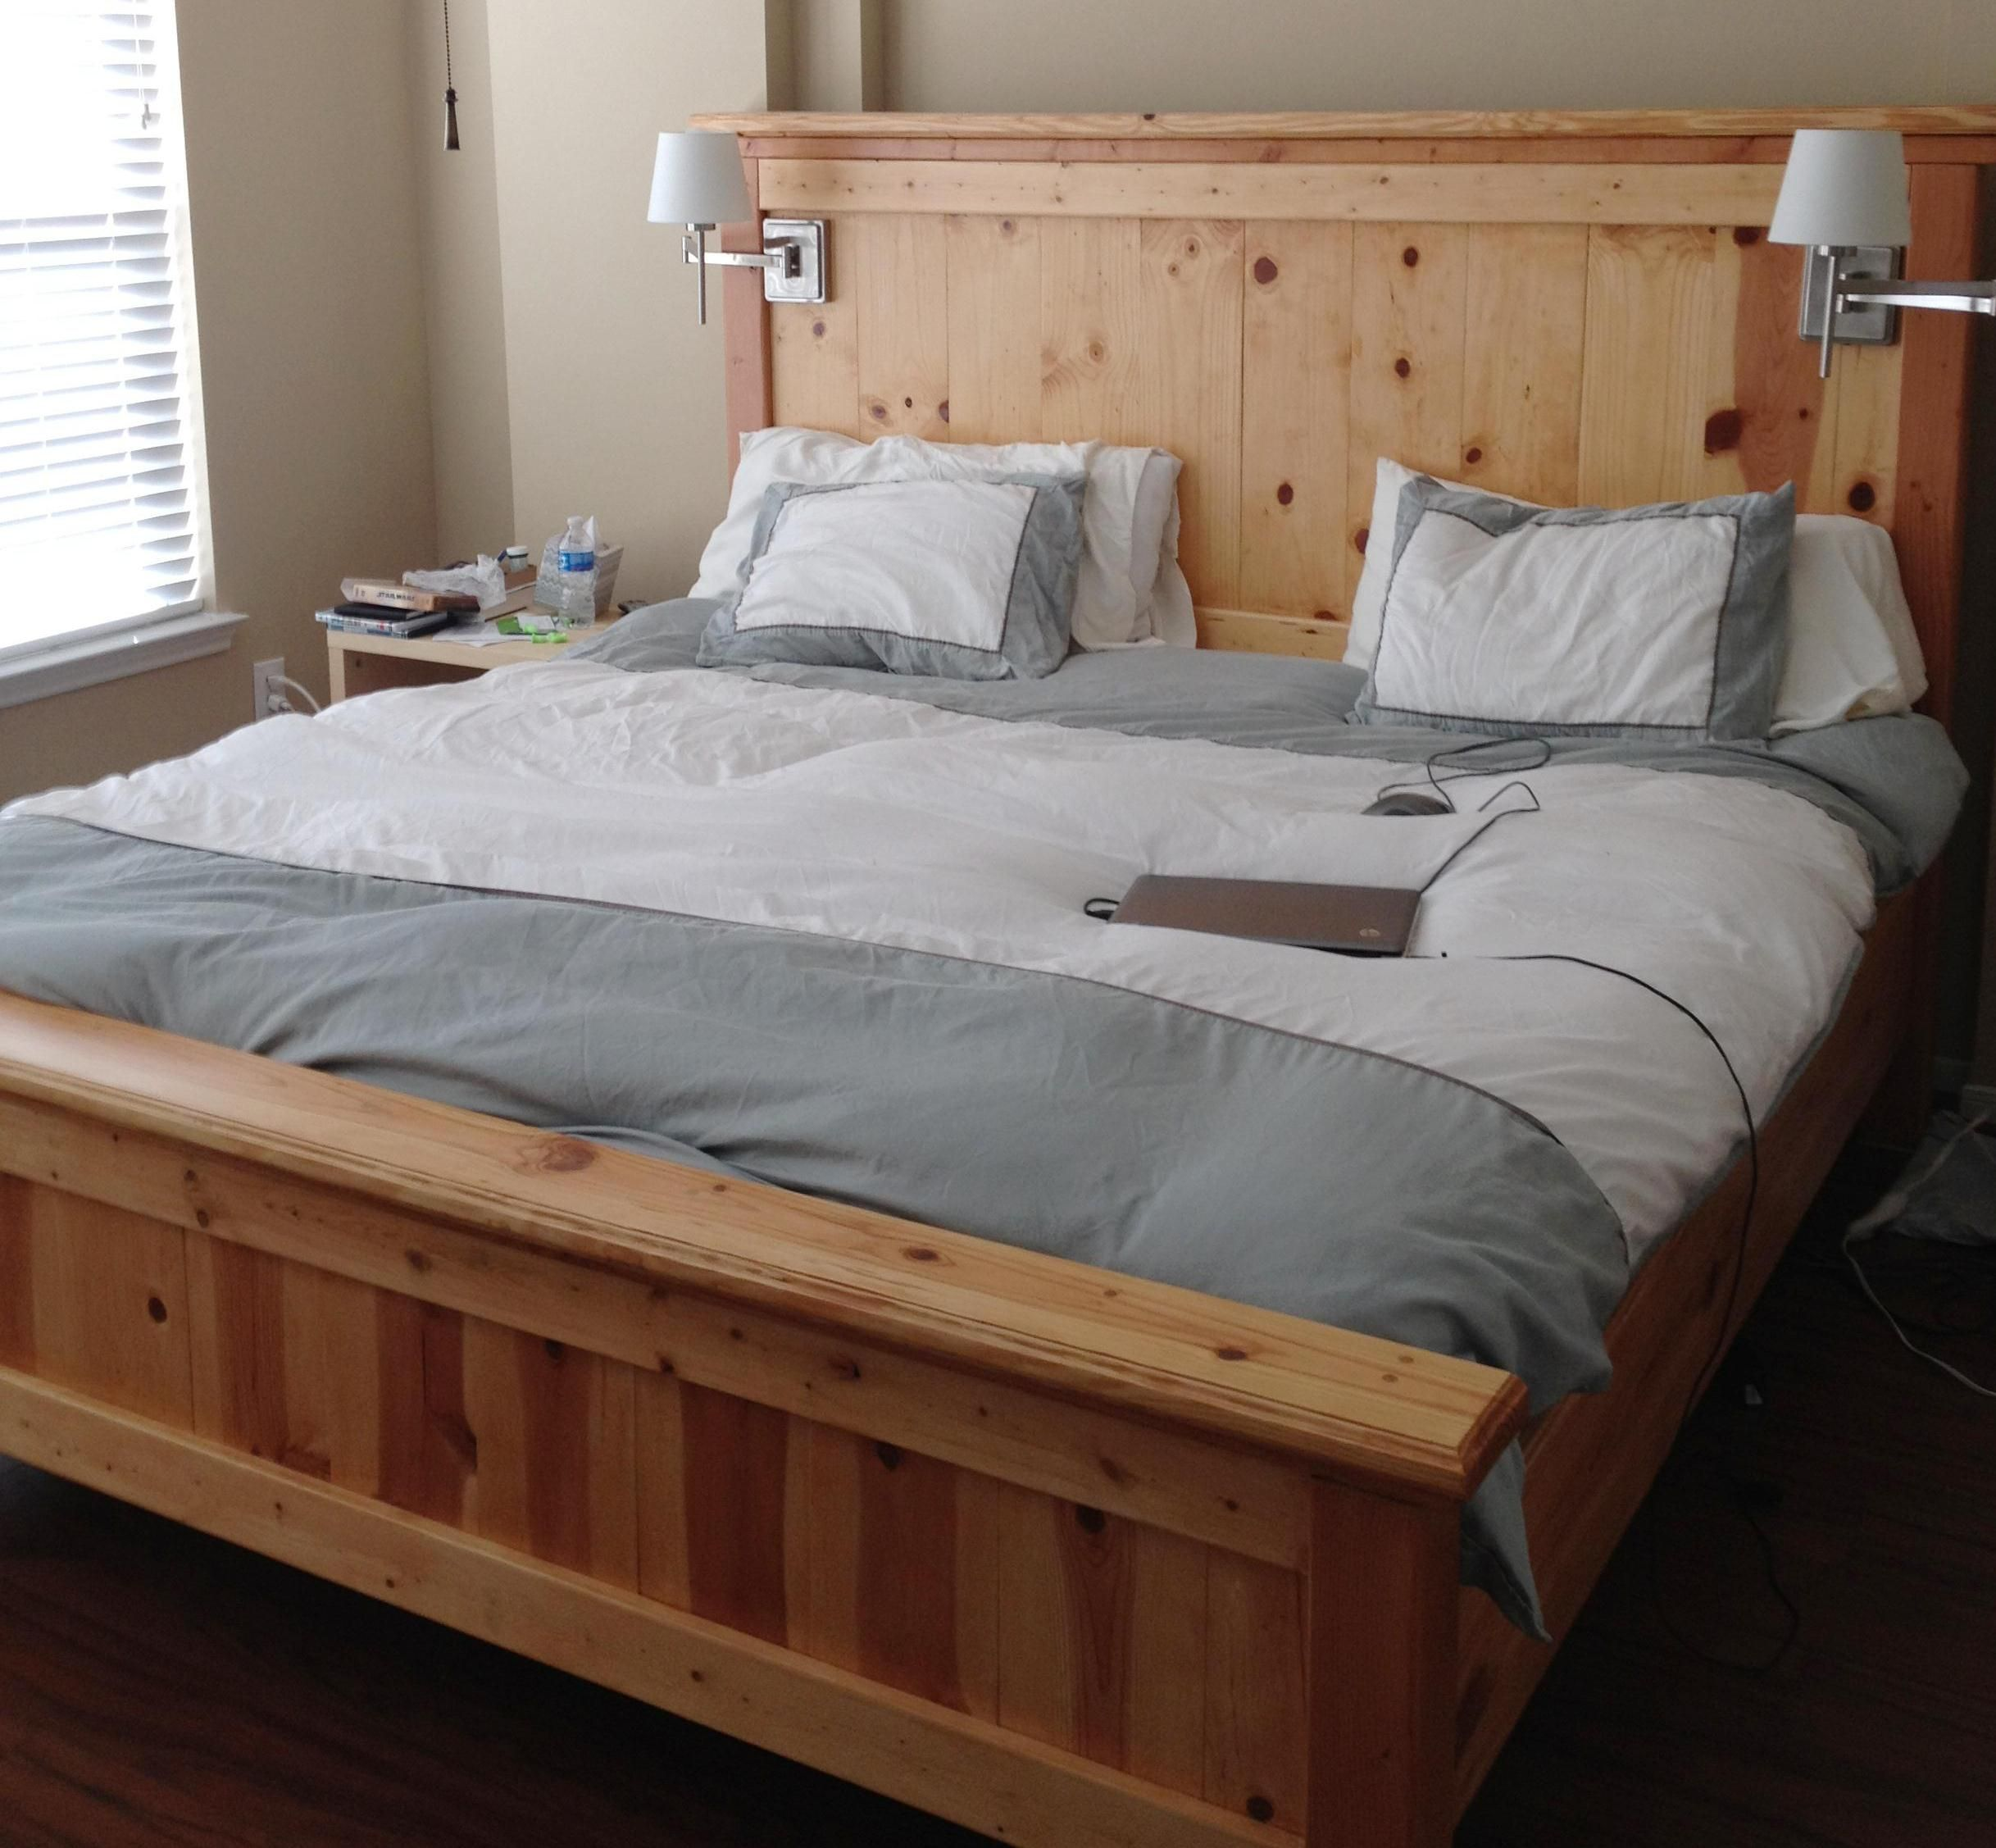 Bed frames with storage plans - King Farmhouse Bed Love The Natural Pine King Size Bed Frame Plans